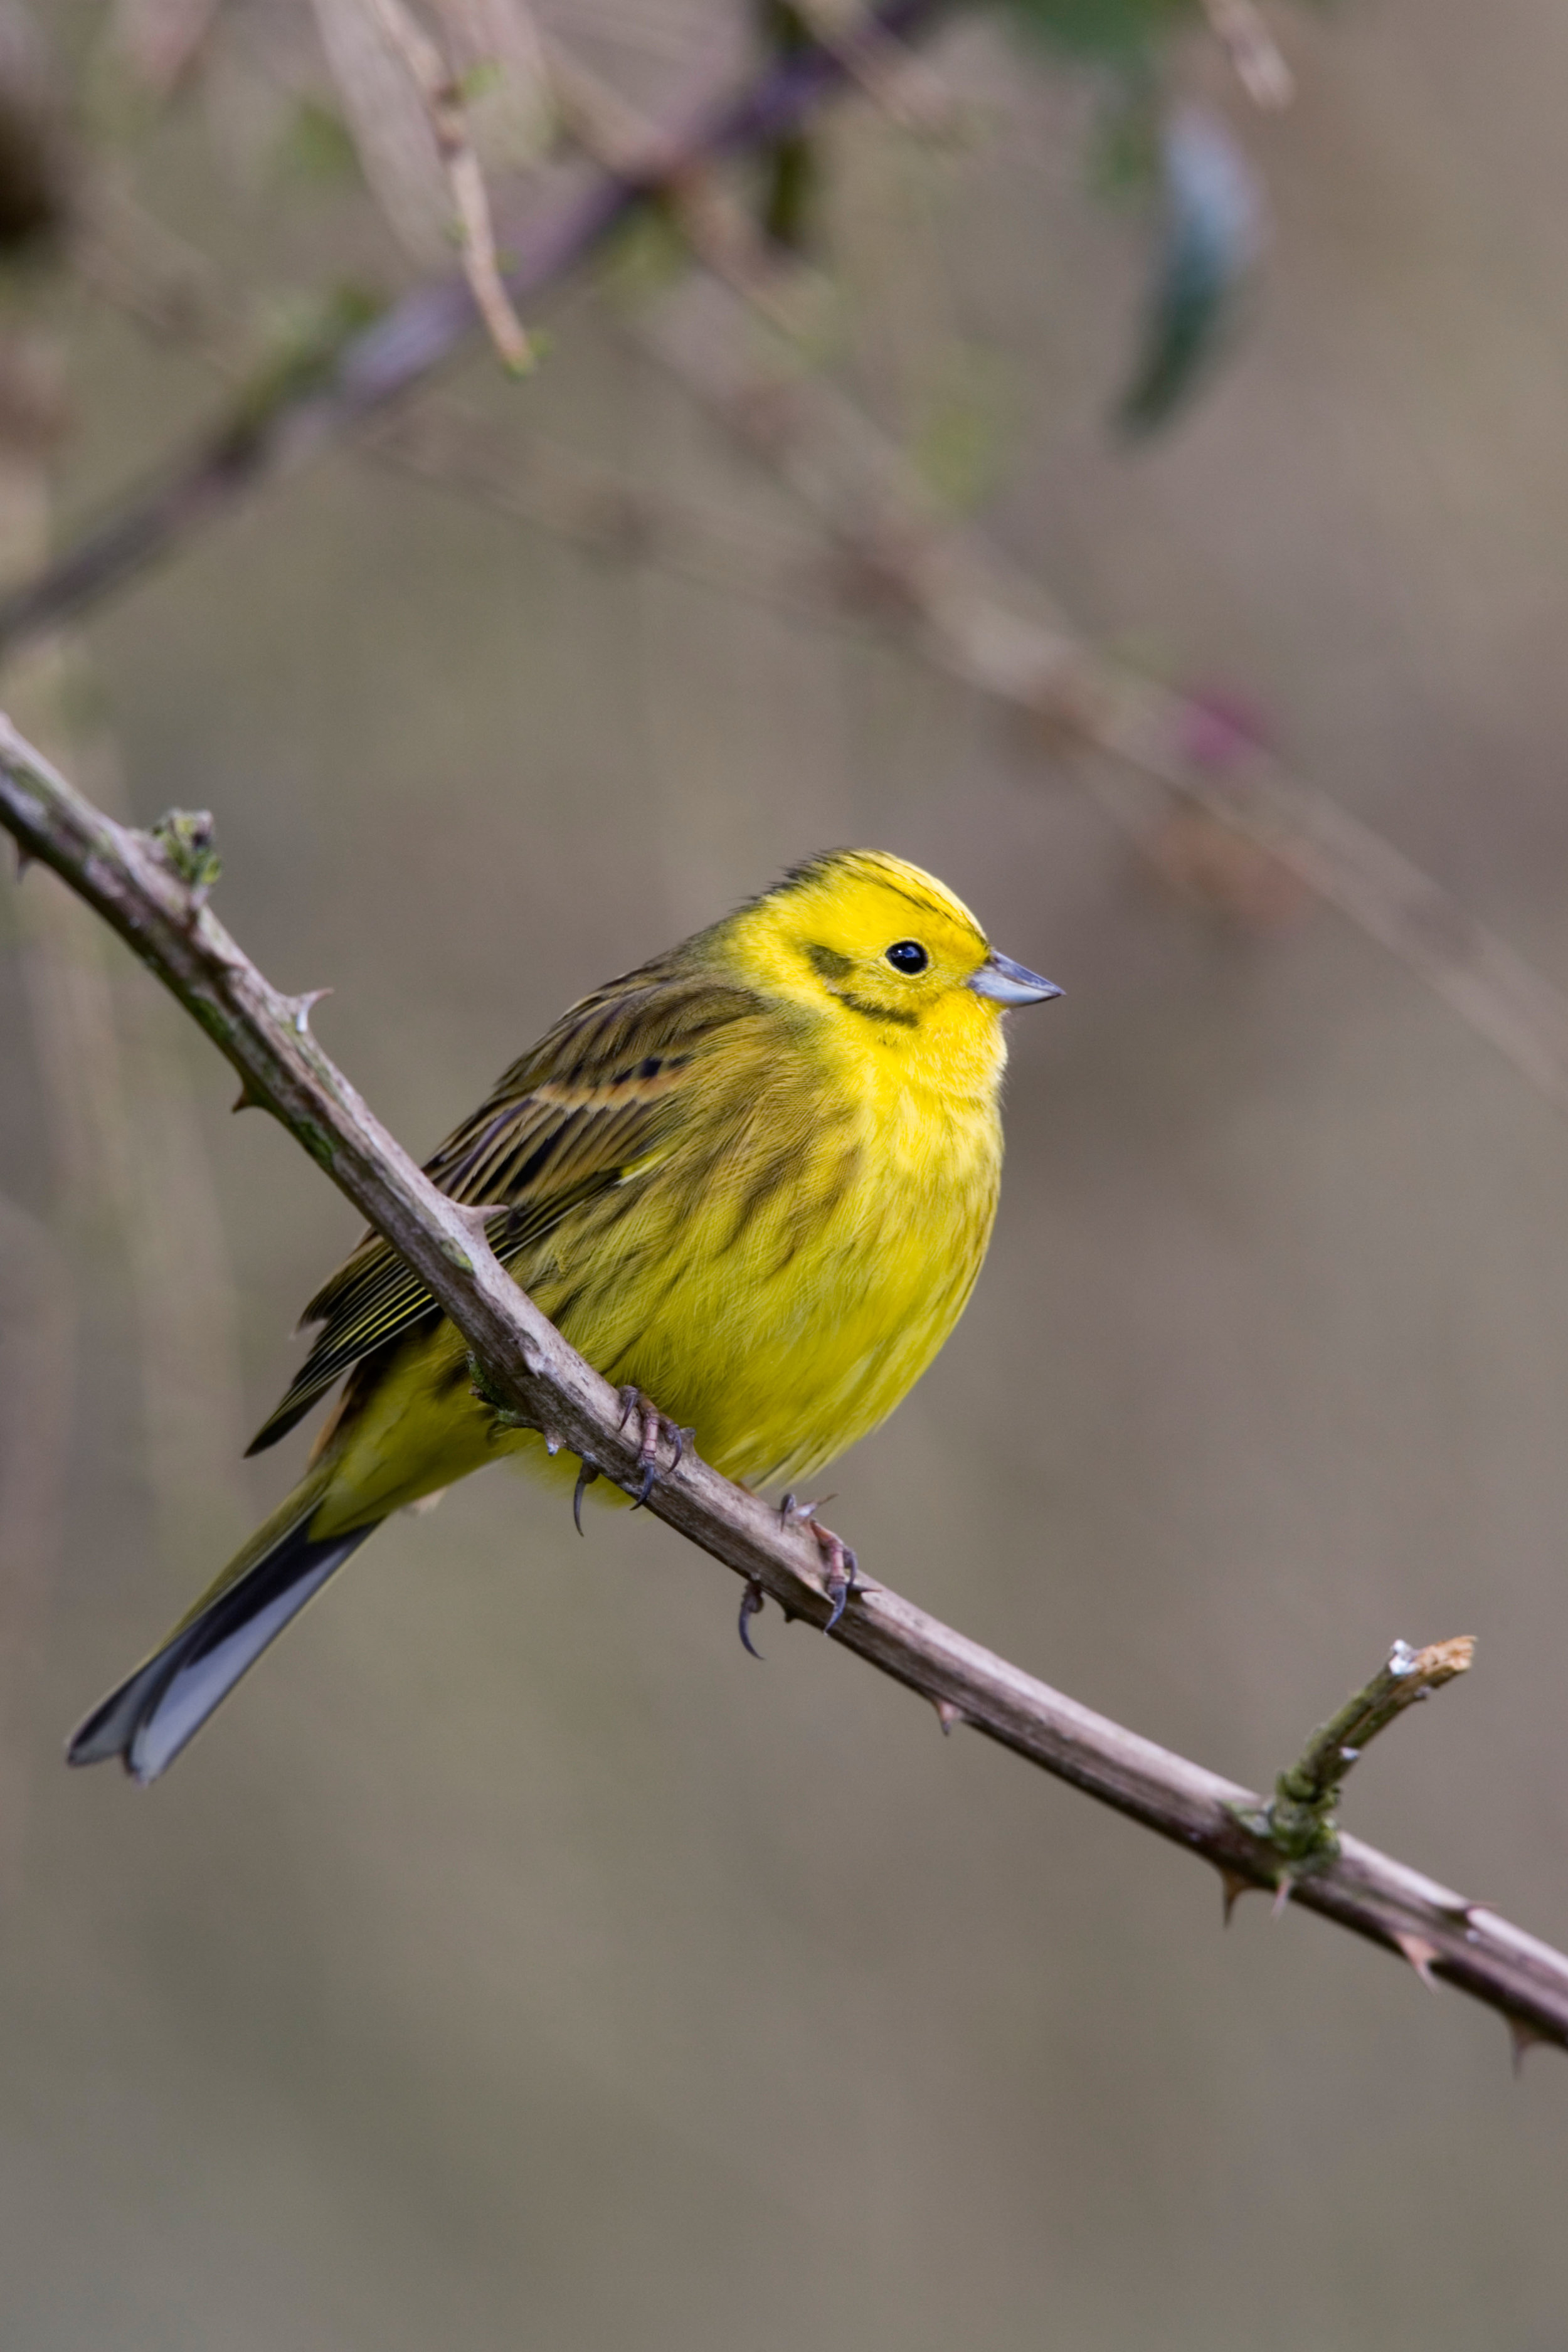 Male Yellowhammer, showing yellow underparts